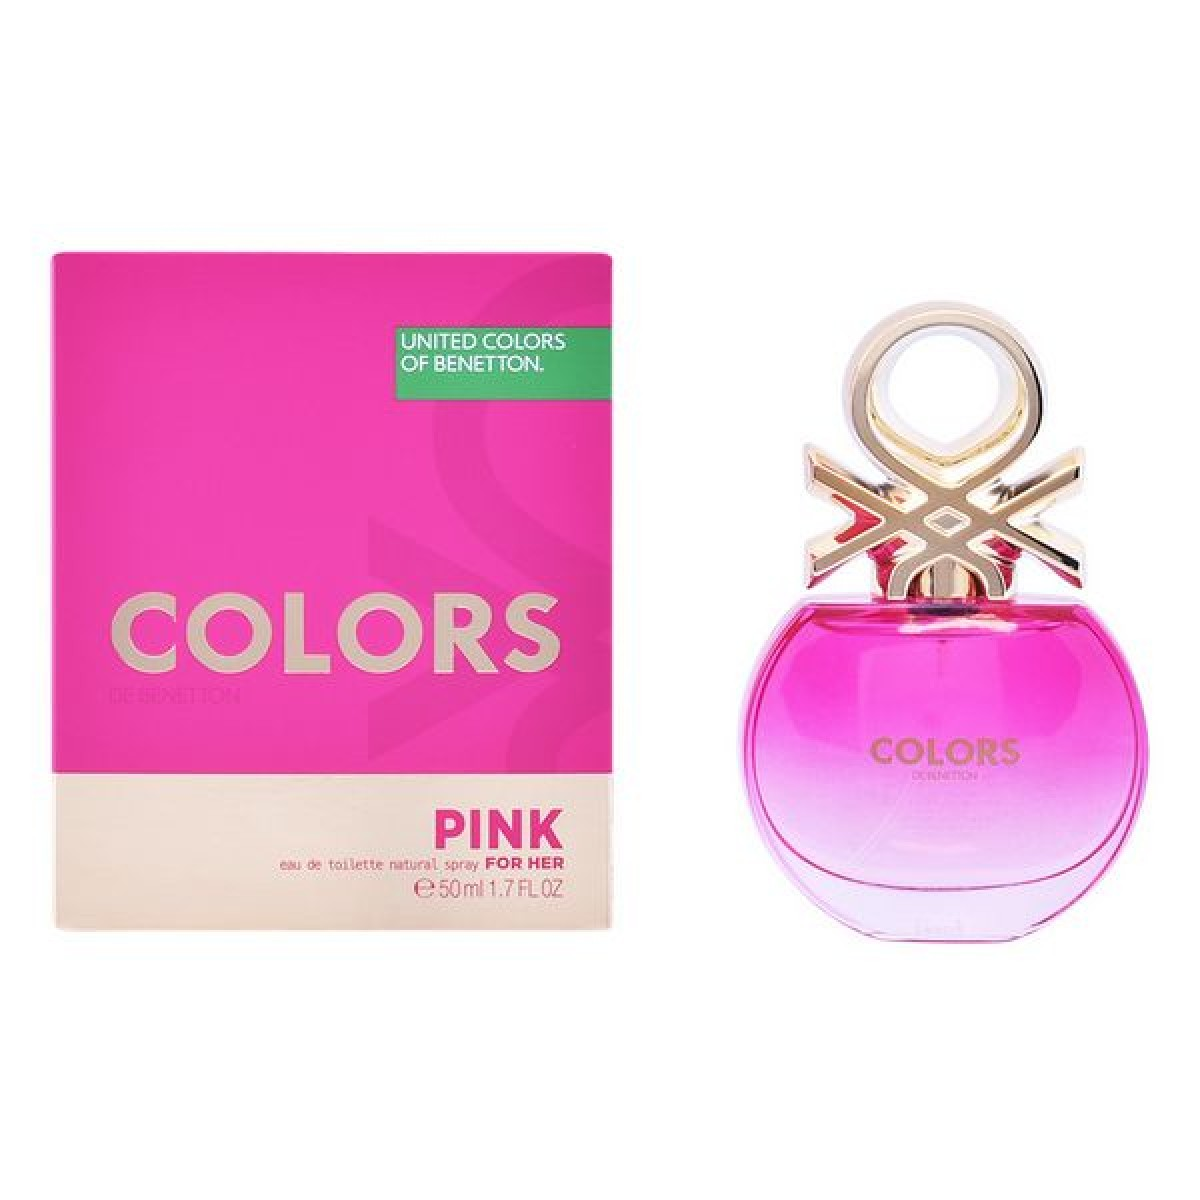 Dameparfume Colors Pink Benetton EDT (50 ml)